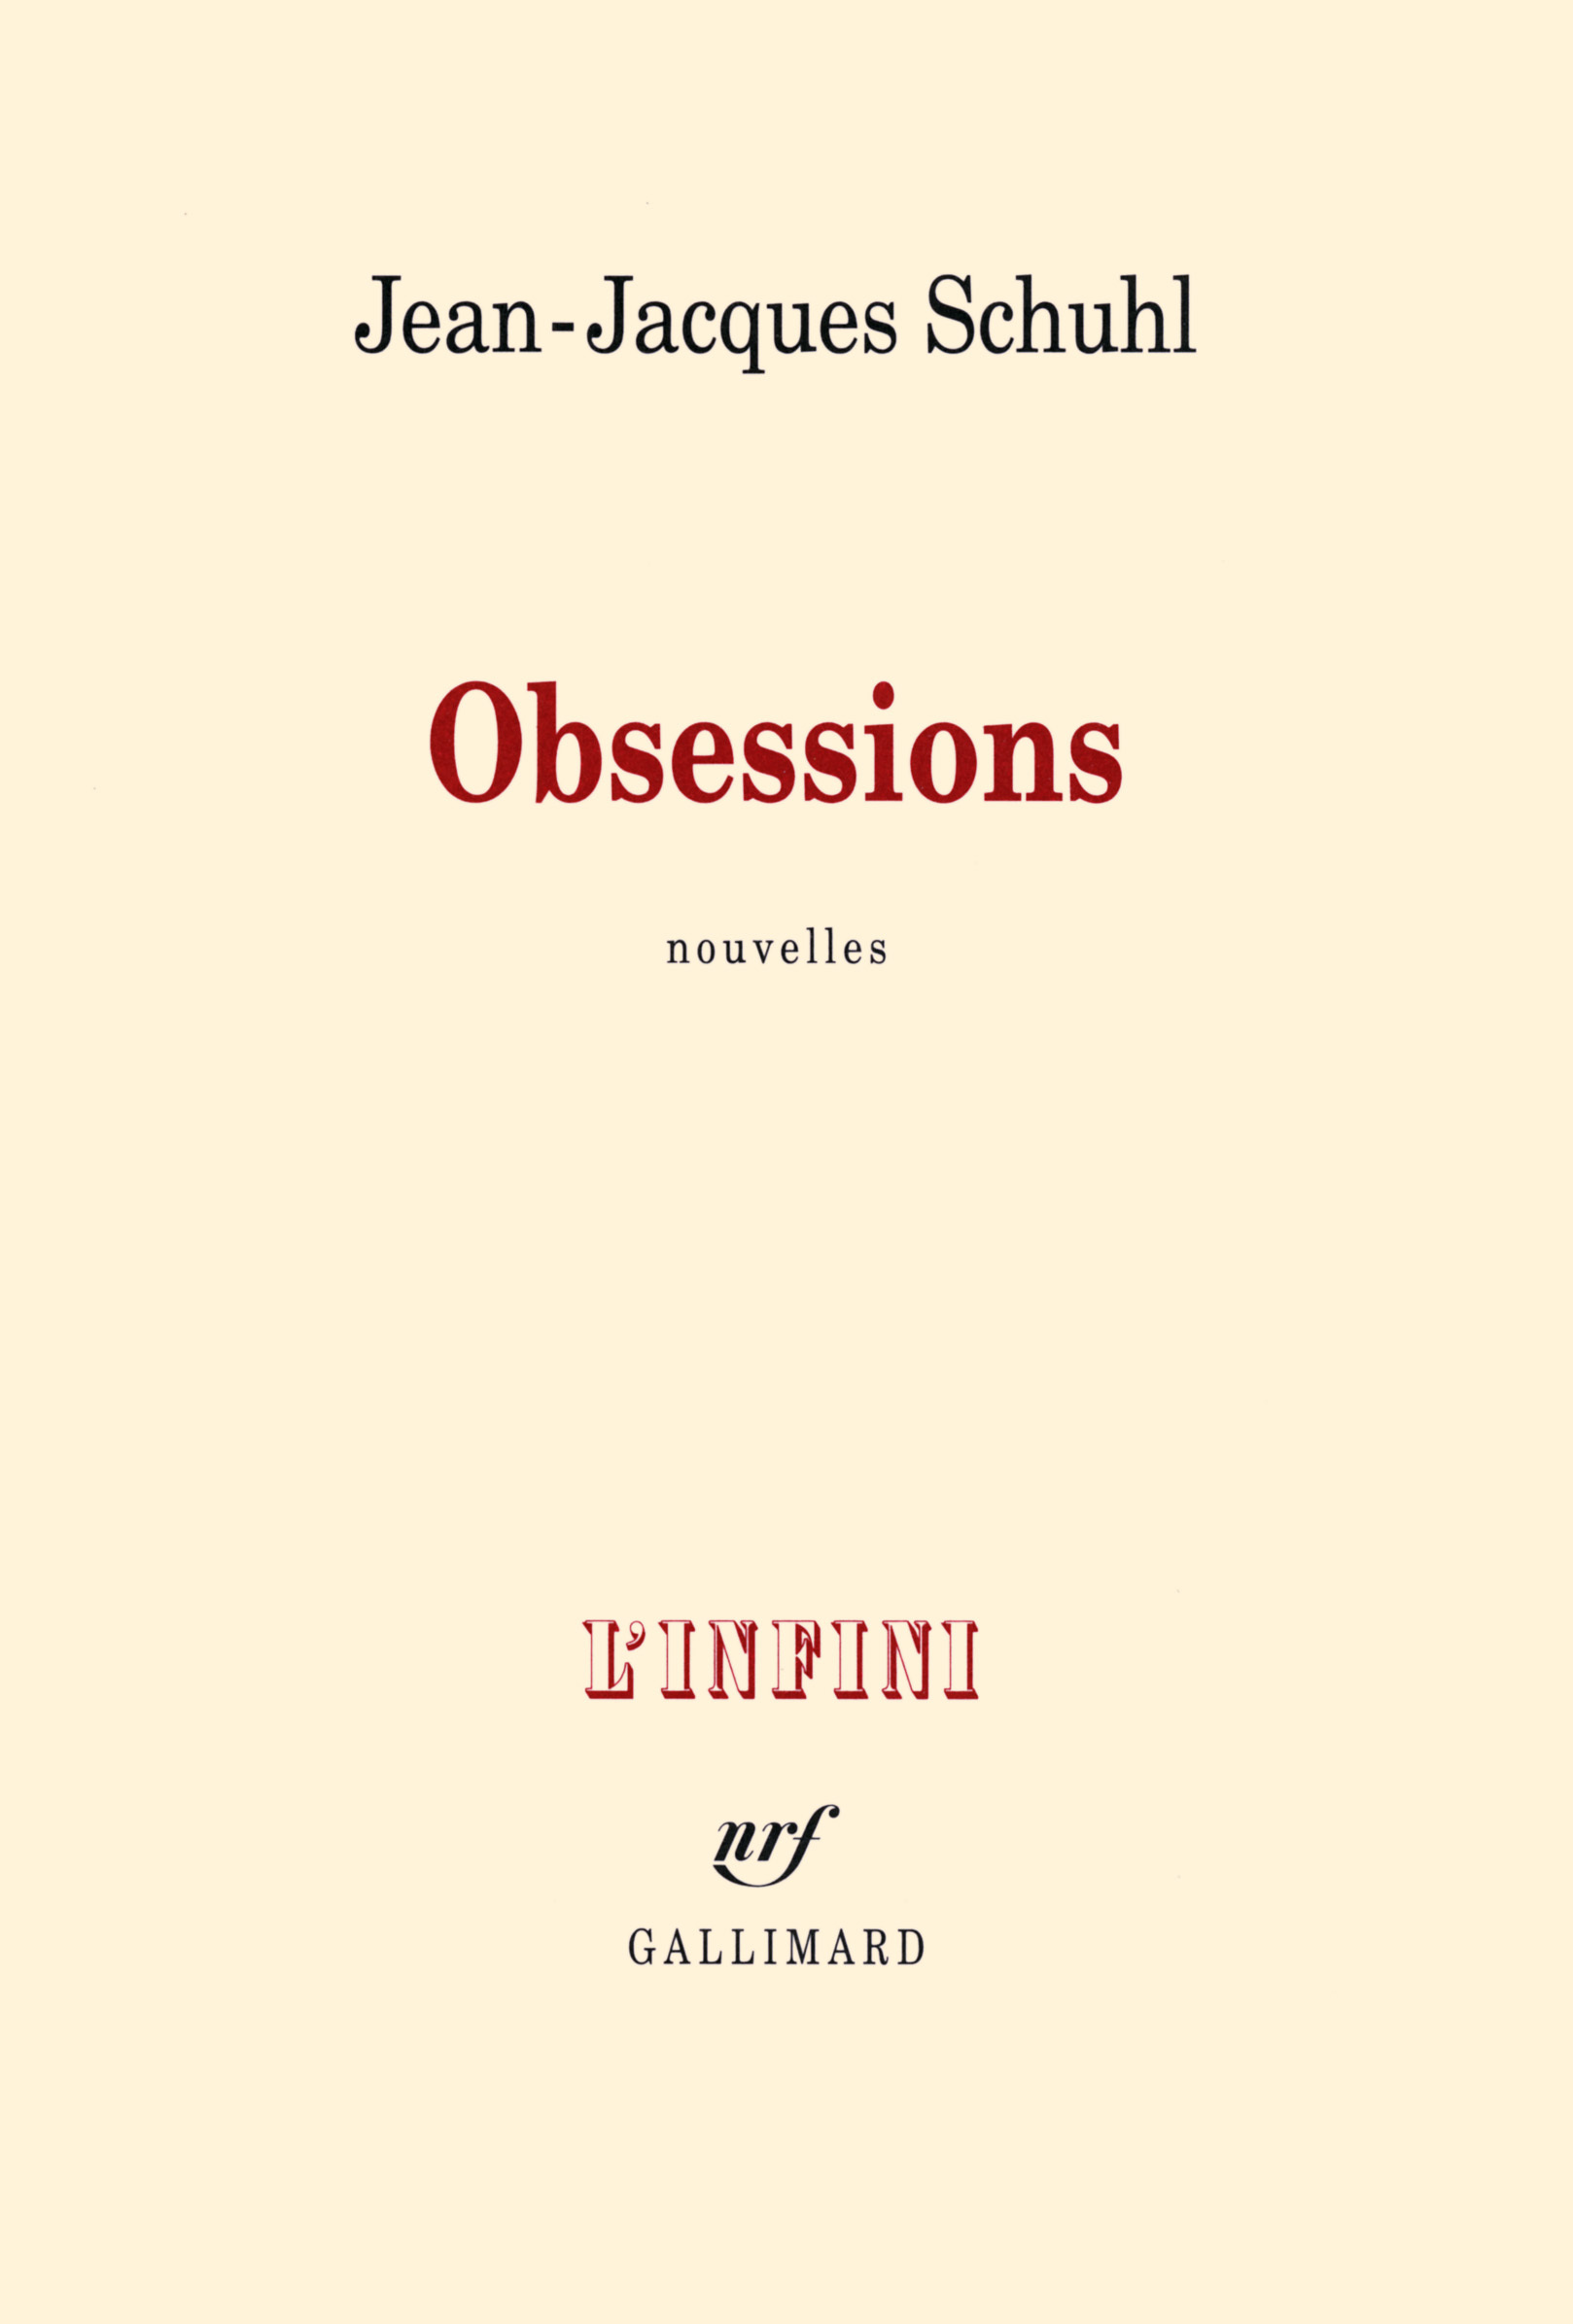 OBSESSIONS NOUVELLES